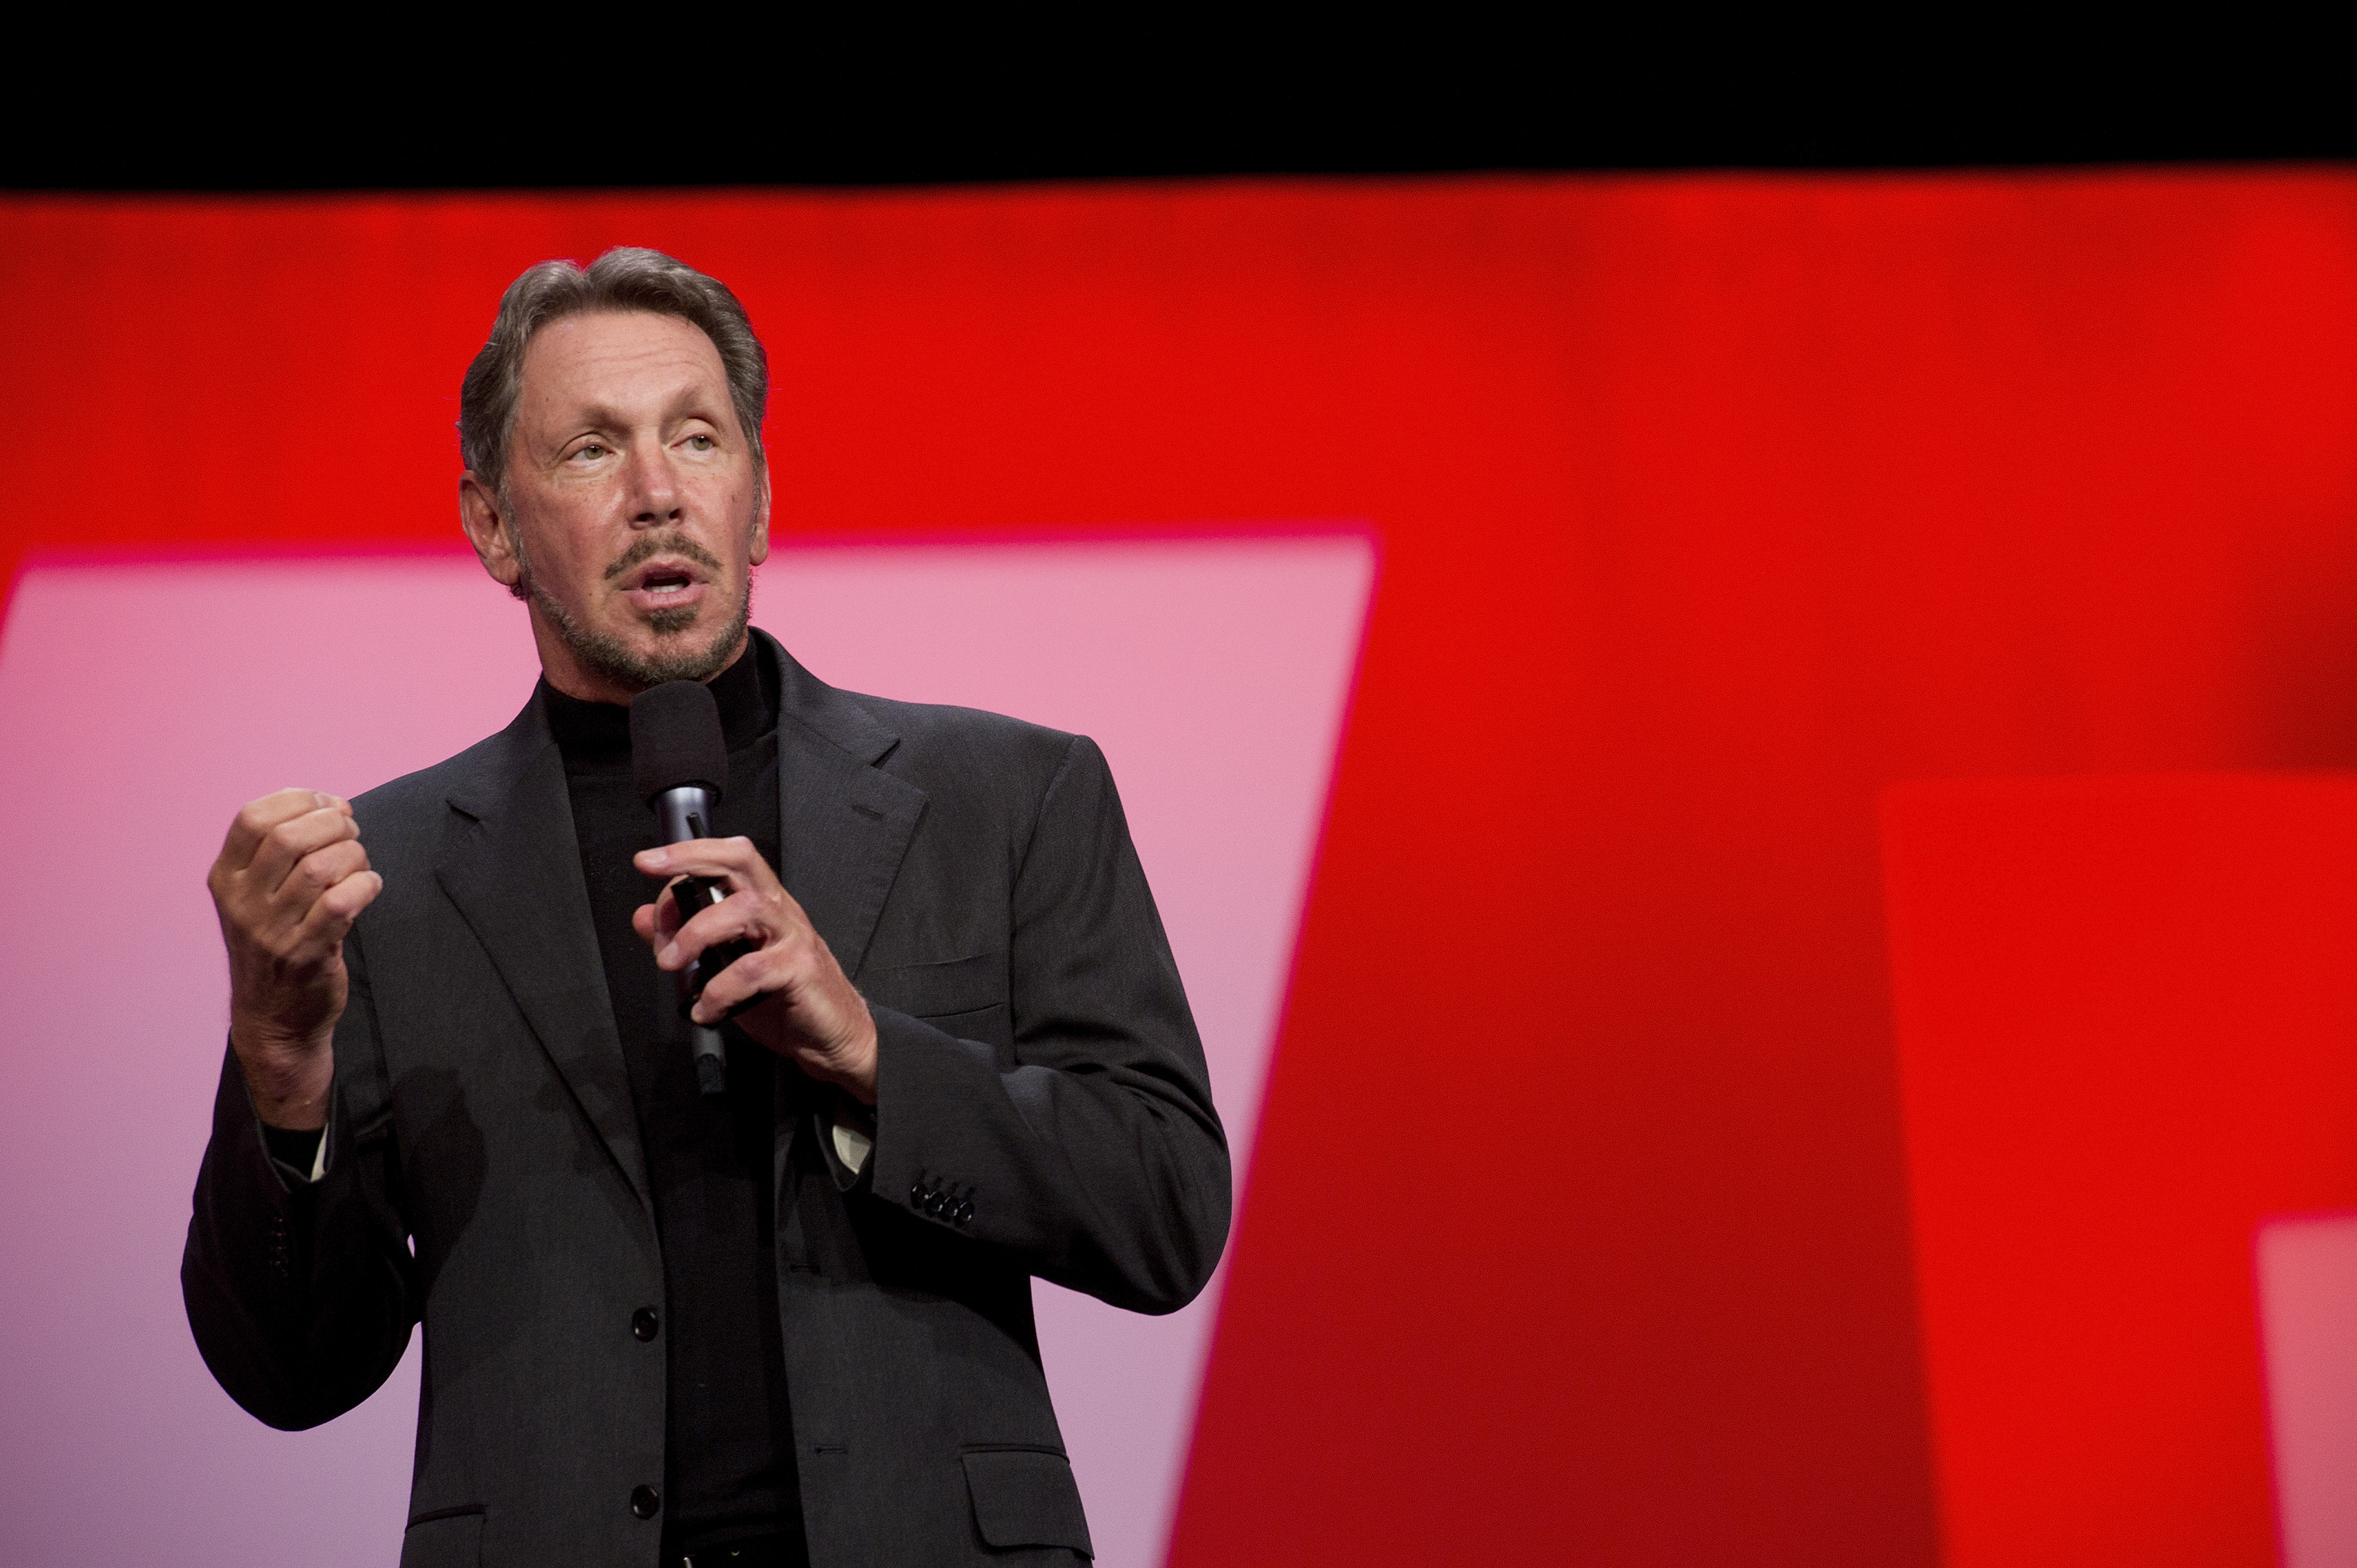 Key Speakers At Oracle's 2012 OpenWorld Conference